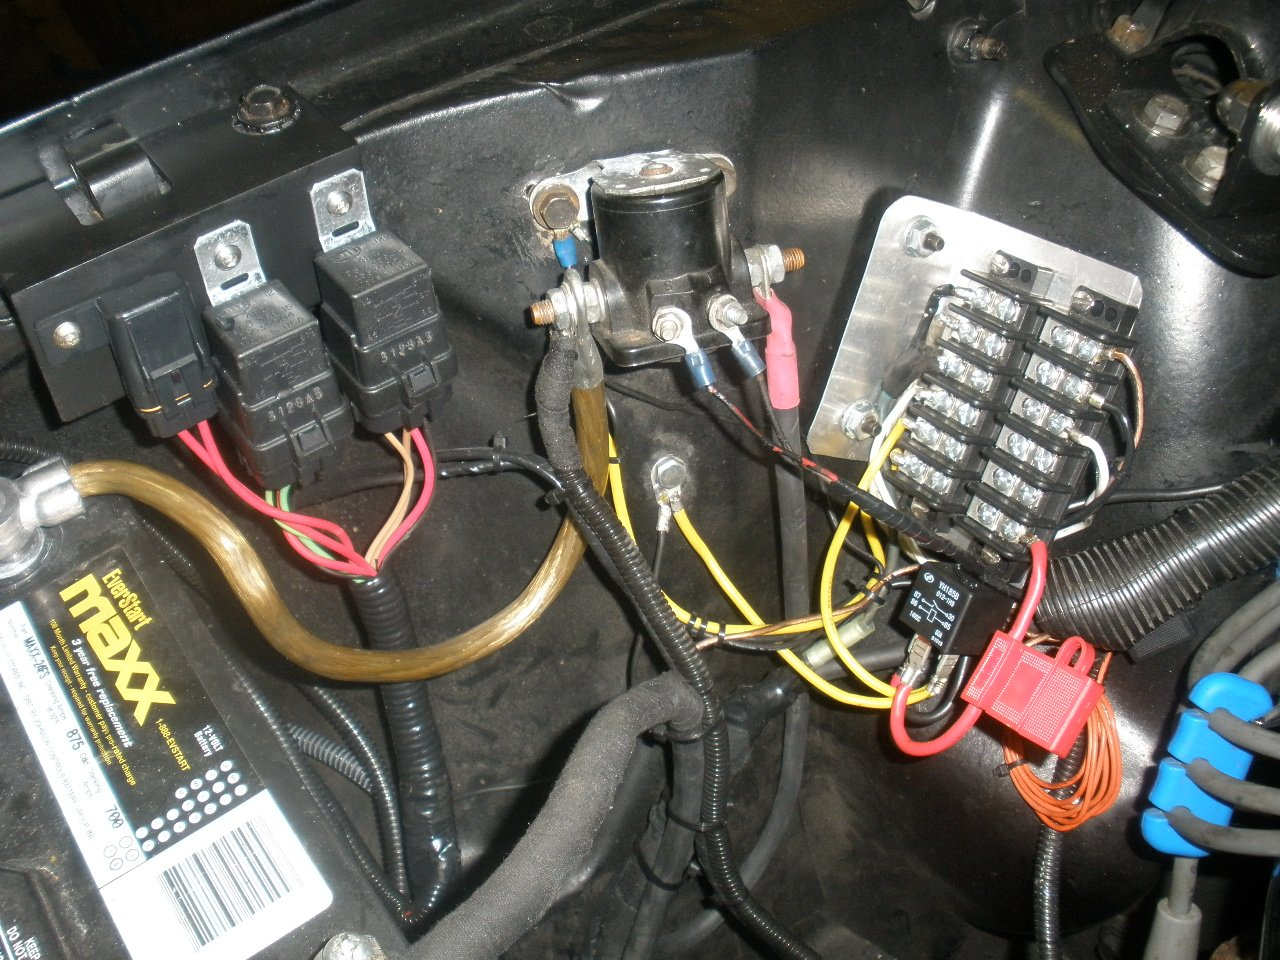 Ignition Wiring Diagram As Well As 66 Mustang Gauge Wiring Diagram In